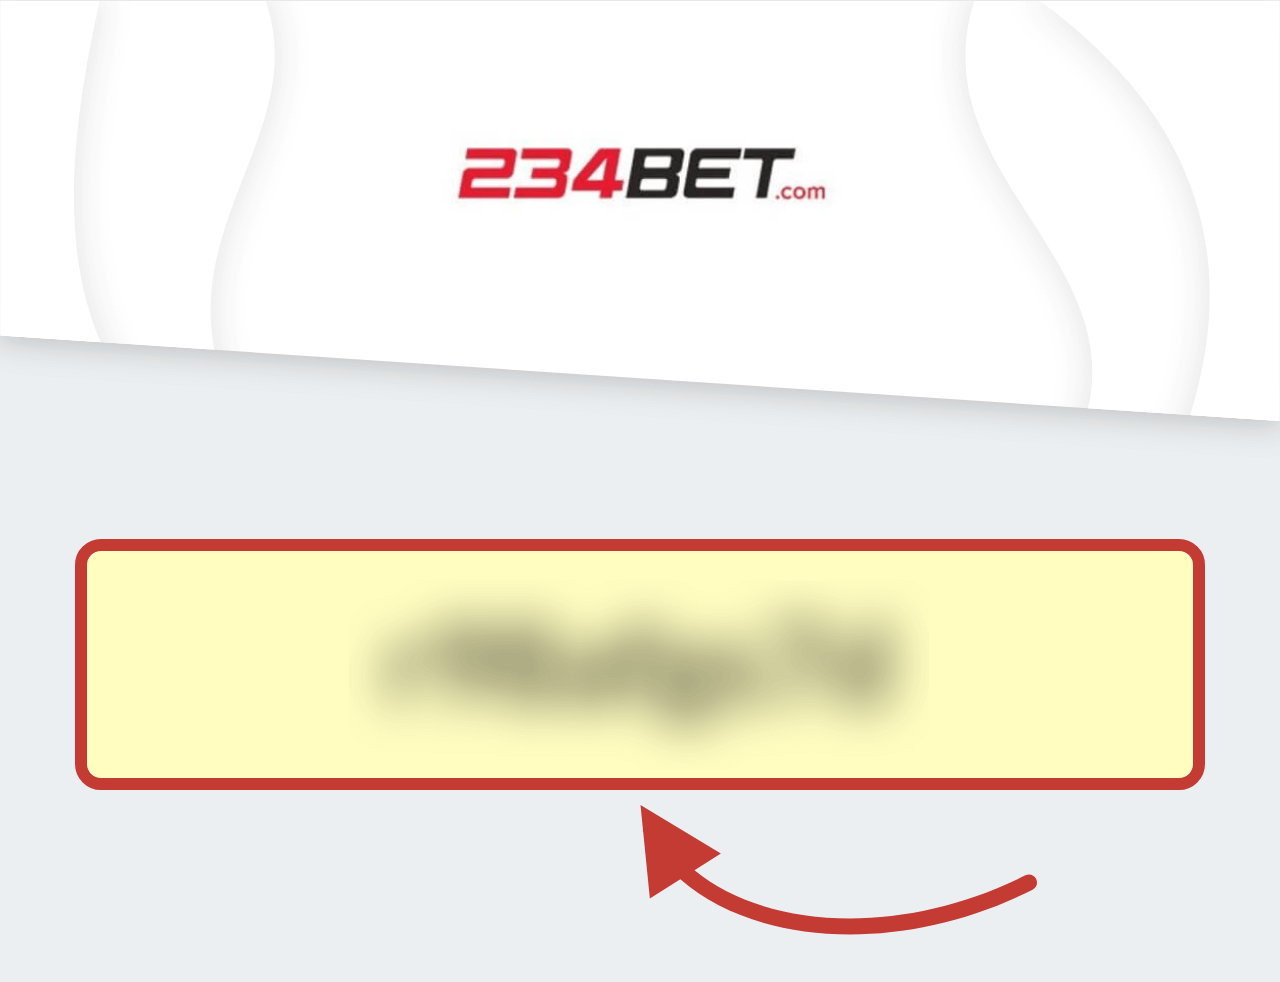 234bet Review